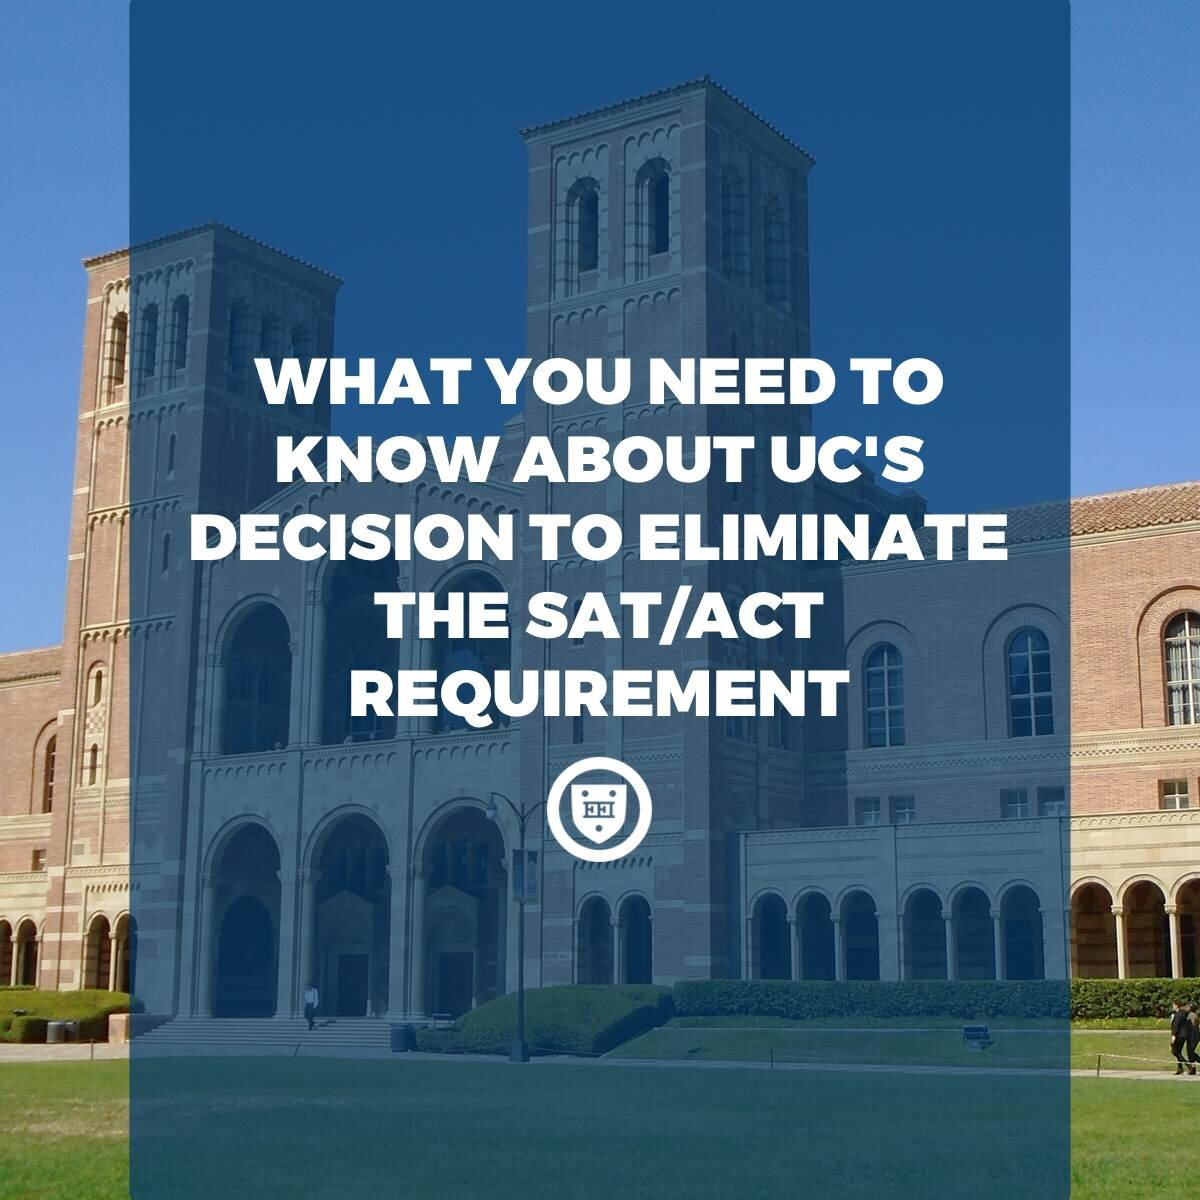 Uc Academic Calendar 2022 23.What You Need To Know About Uc S Decision To Eliminate The Sat Act Requirement Updated September 3 2020 Elite Educational Institute